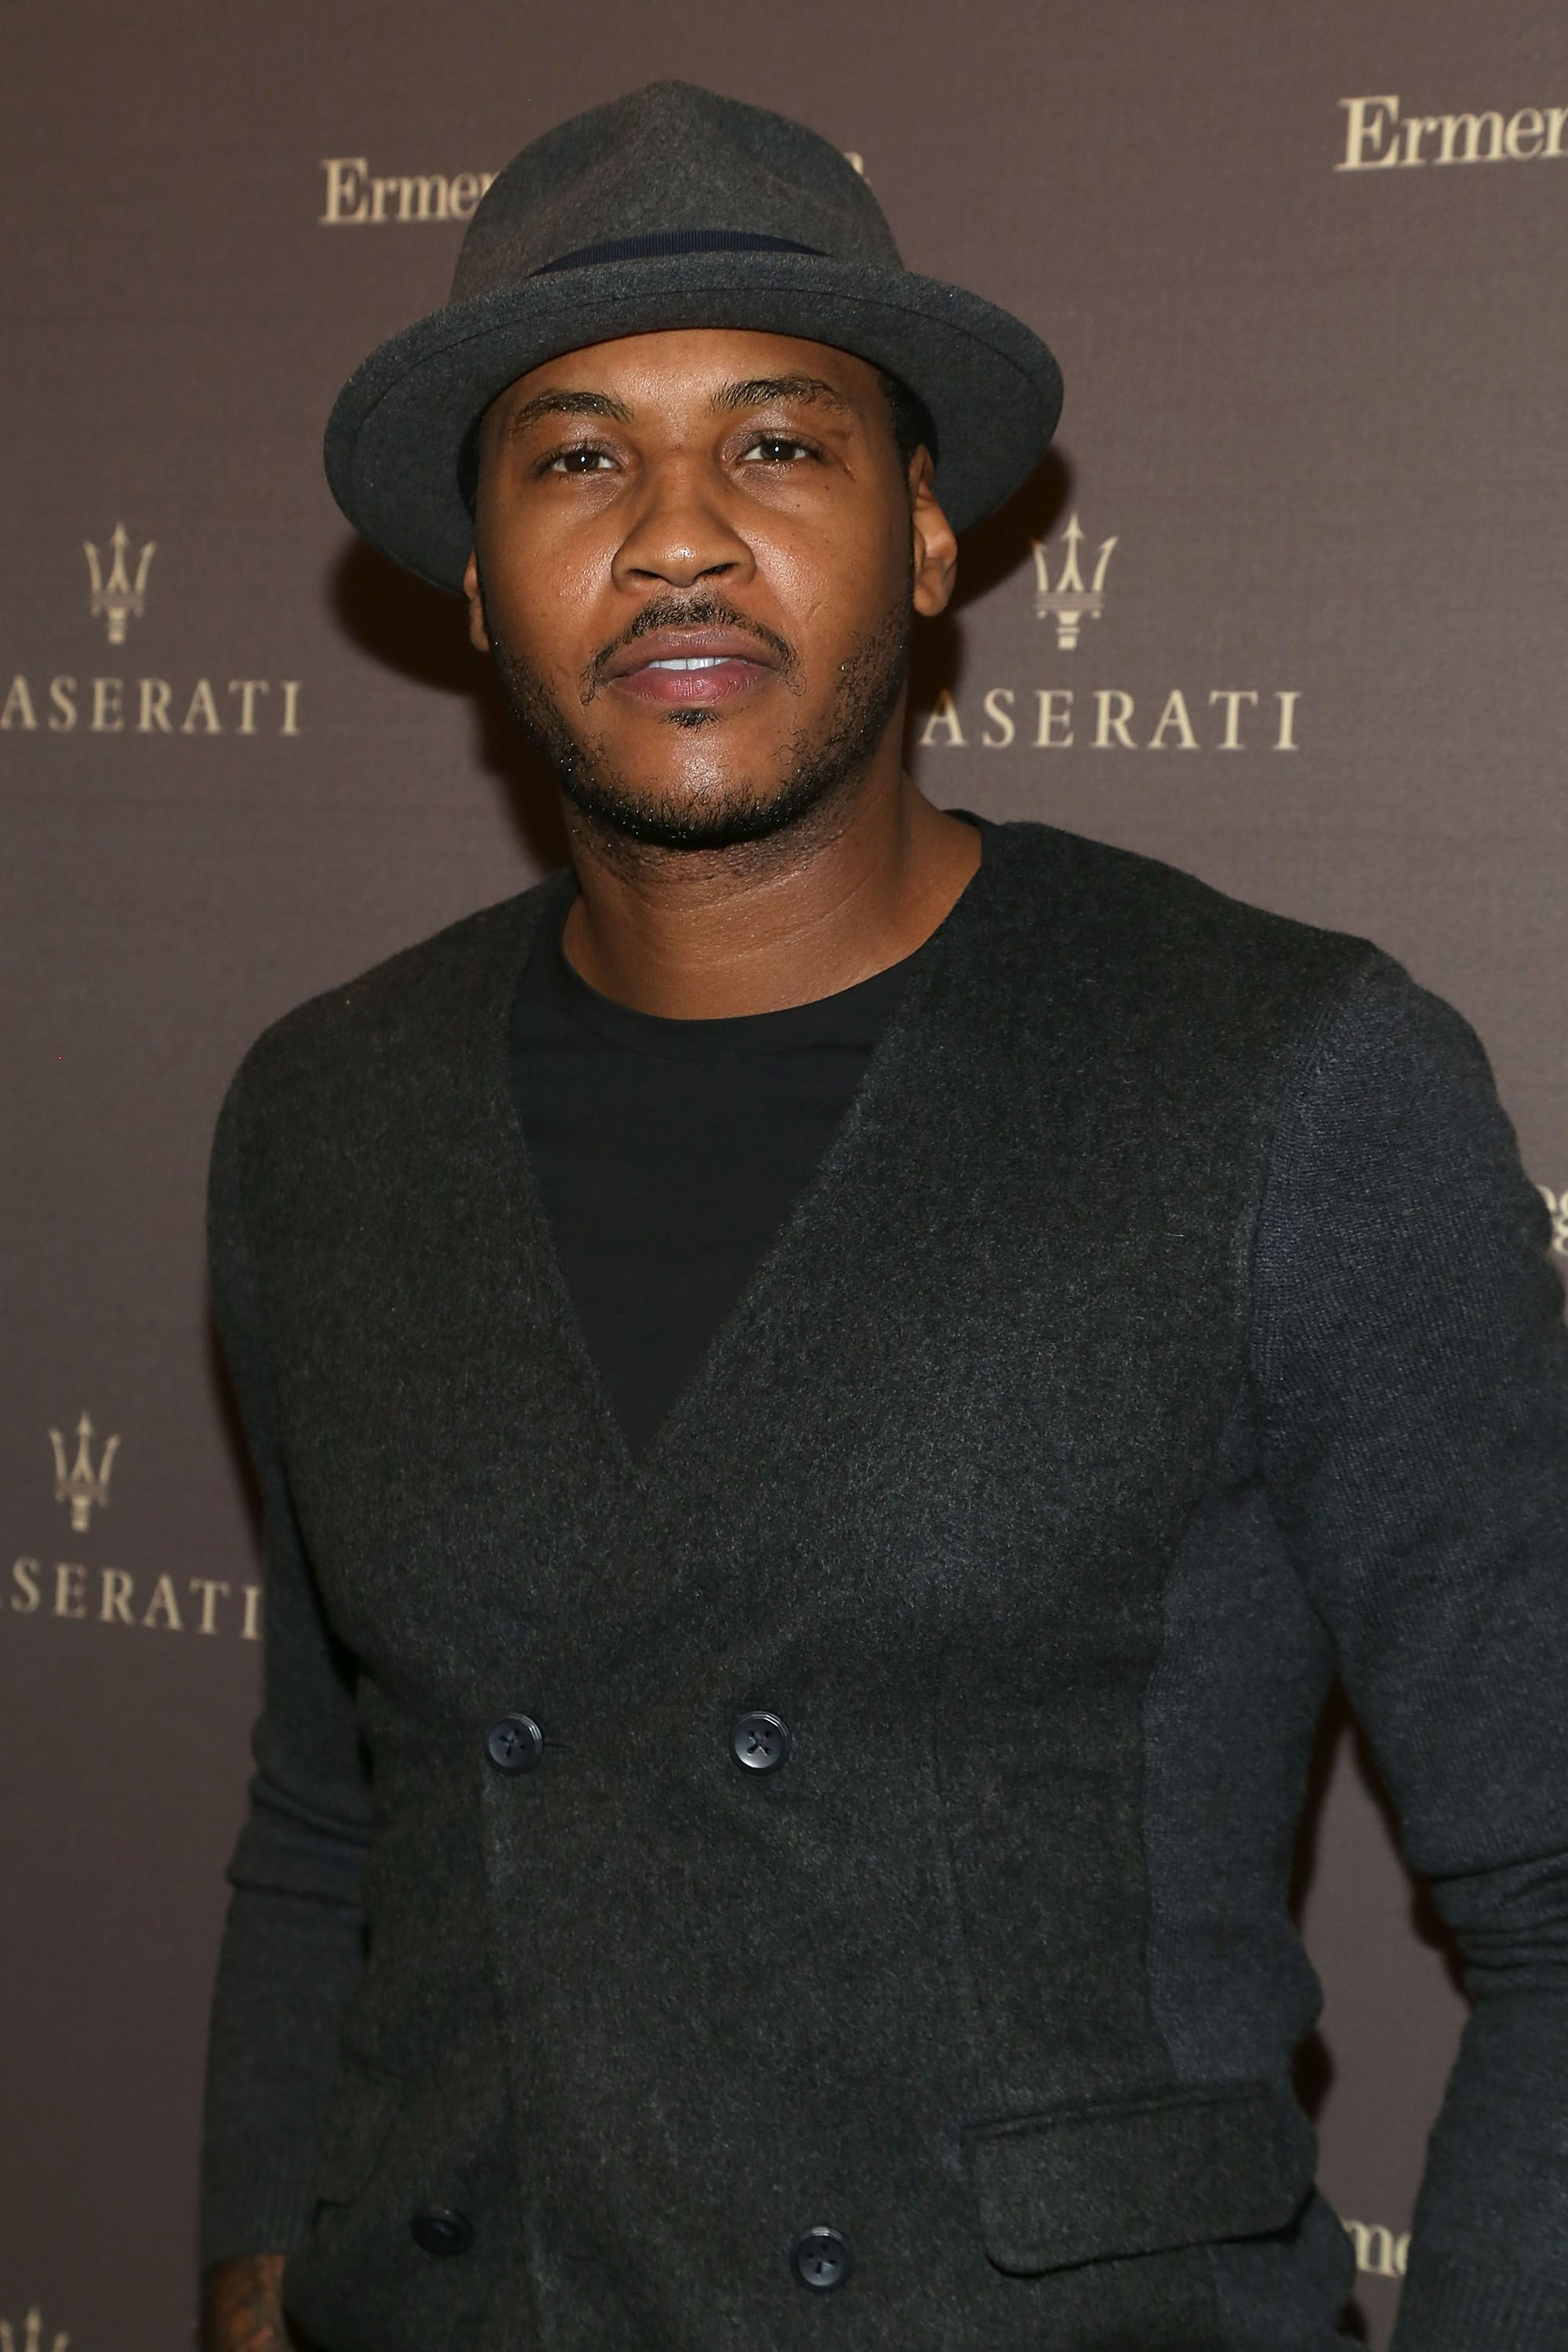 Carmelo Anthony attends a red carpet event | Source: Getty Images/GlobalImagesUkraine